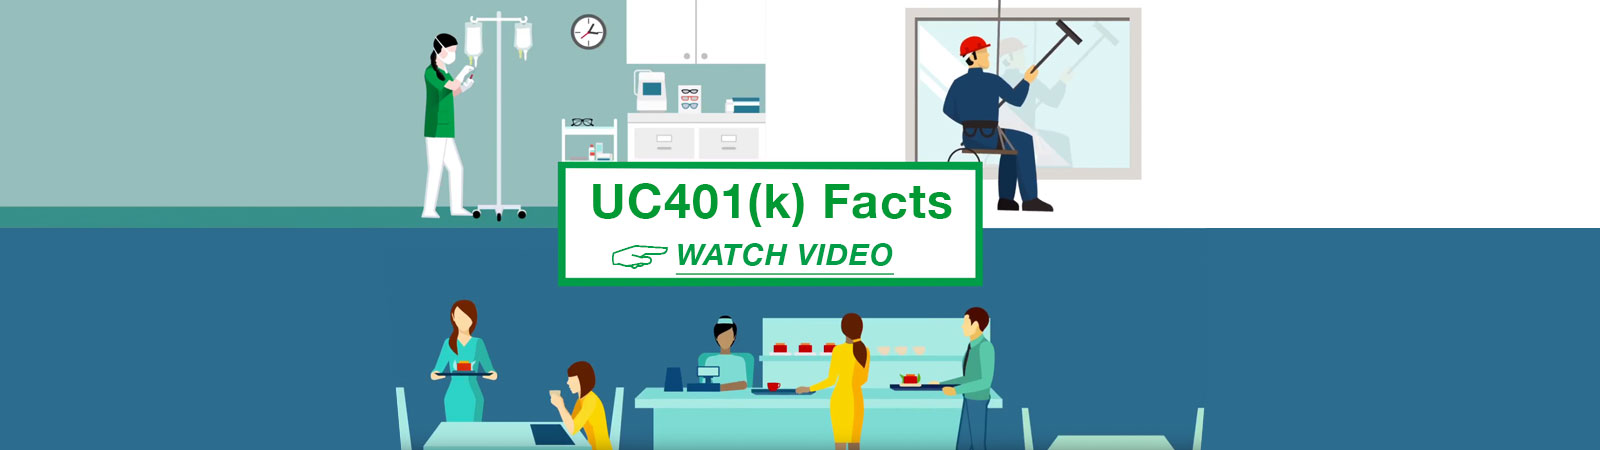 UC 401(k) Facts Video